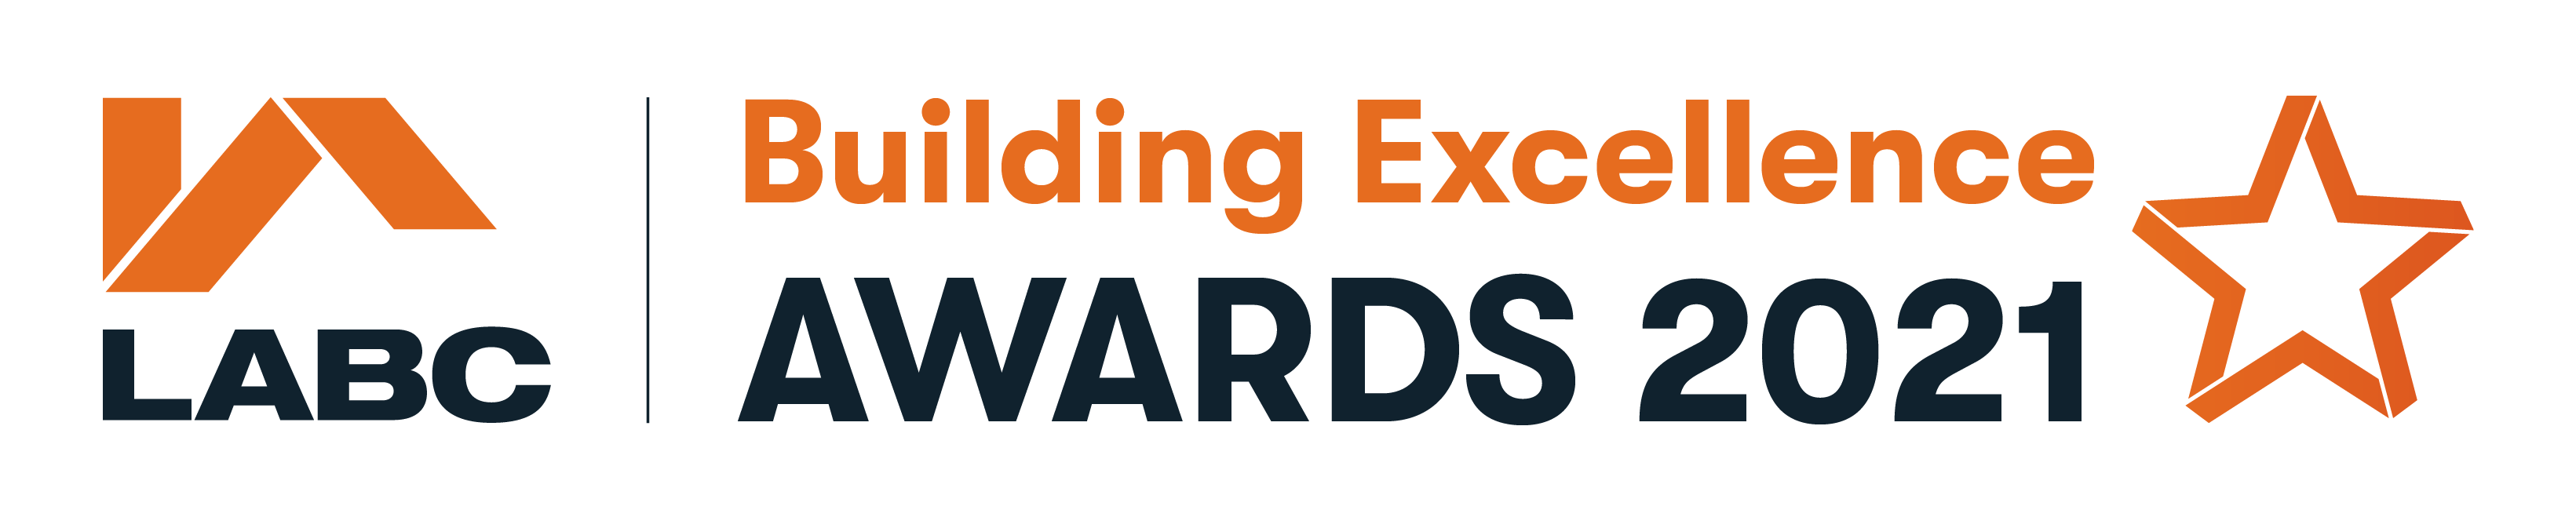 LABC Building Excellence Awards logo 2021